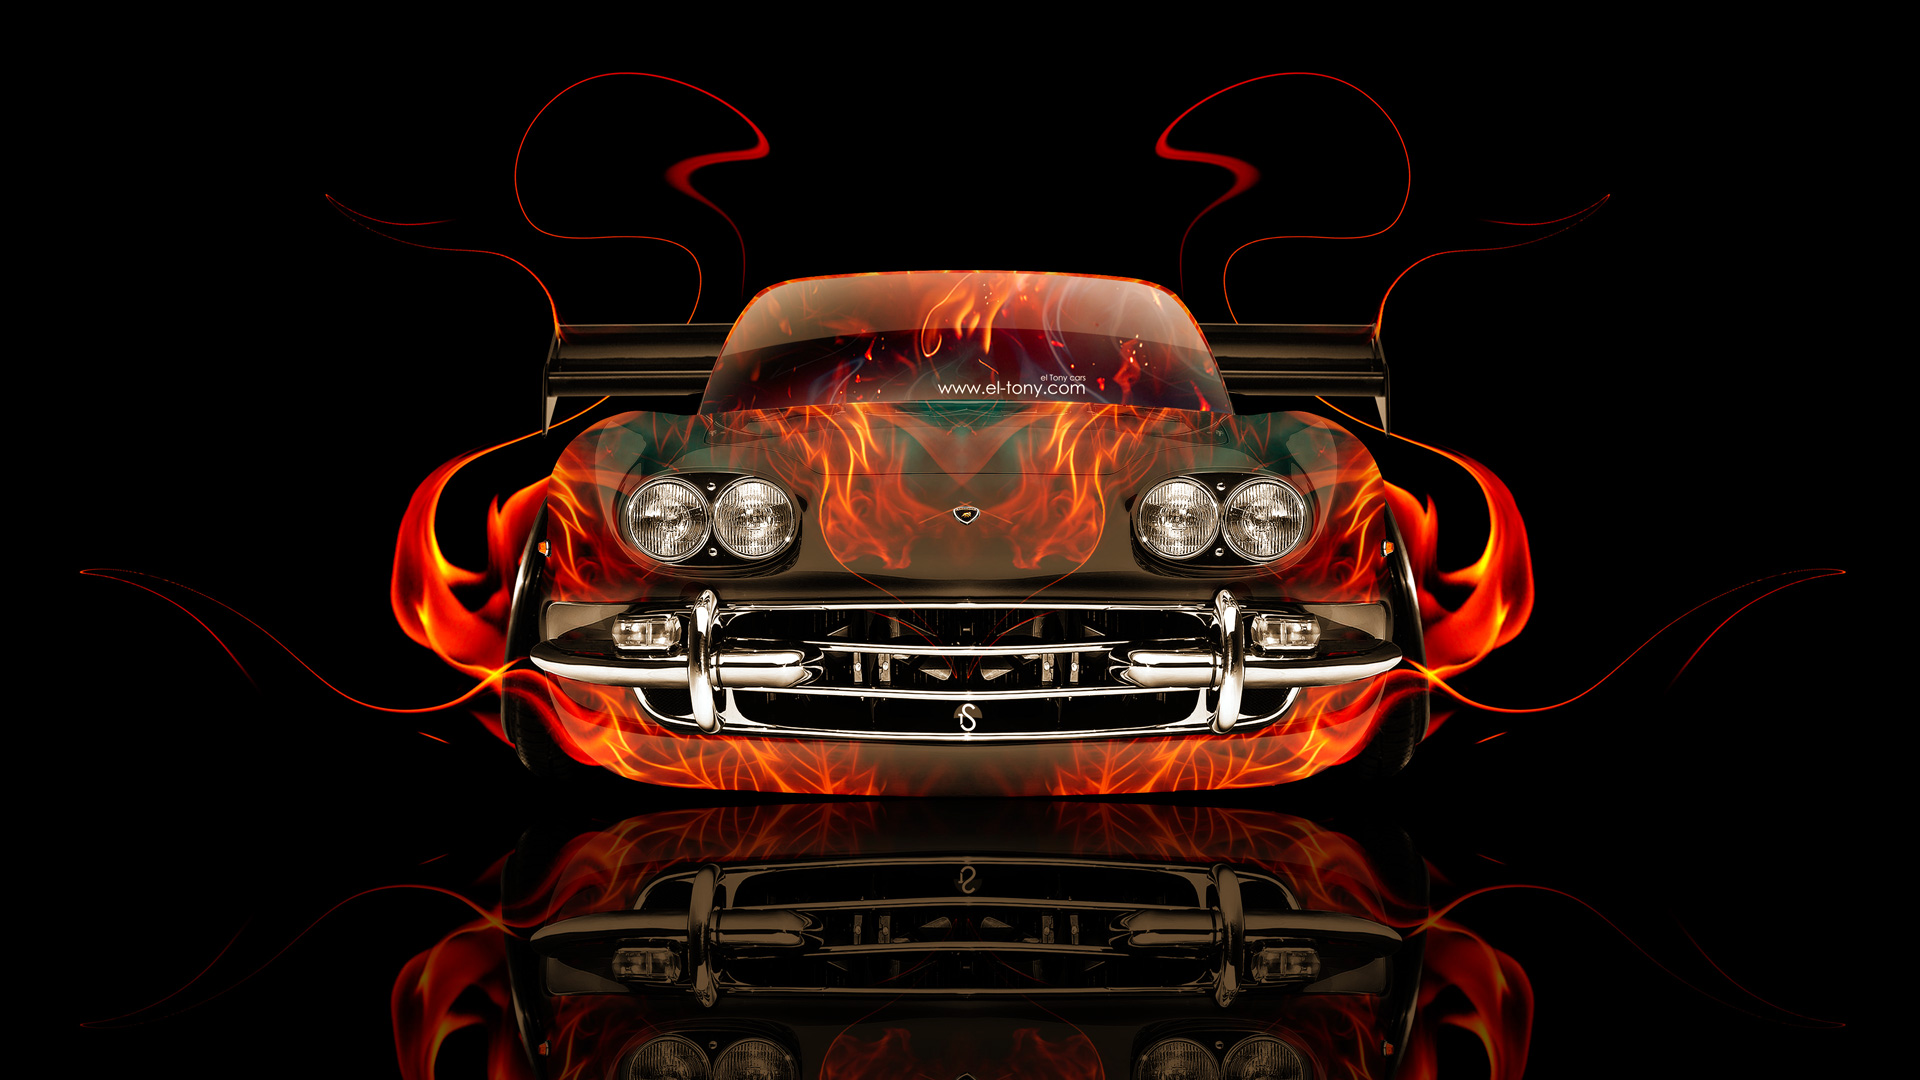 Superbe Lamborghini 400 GT Front Fire Abstract Car 2014